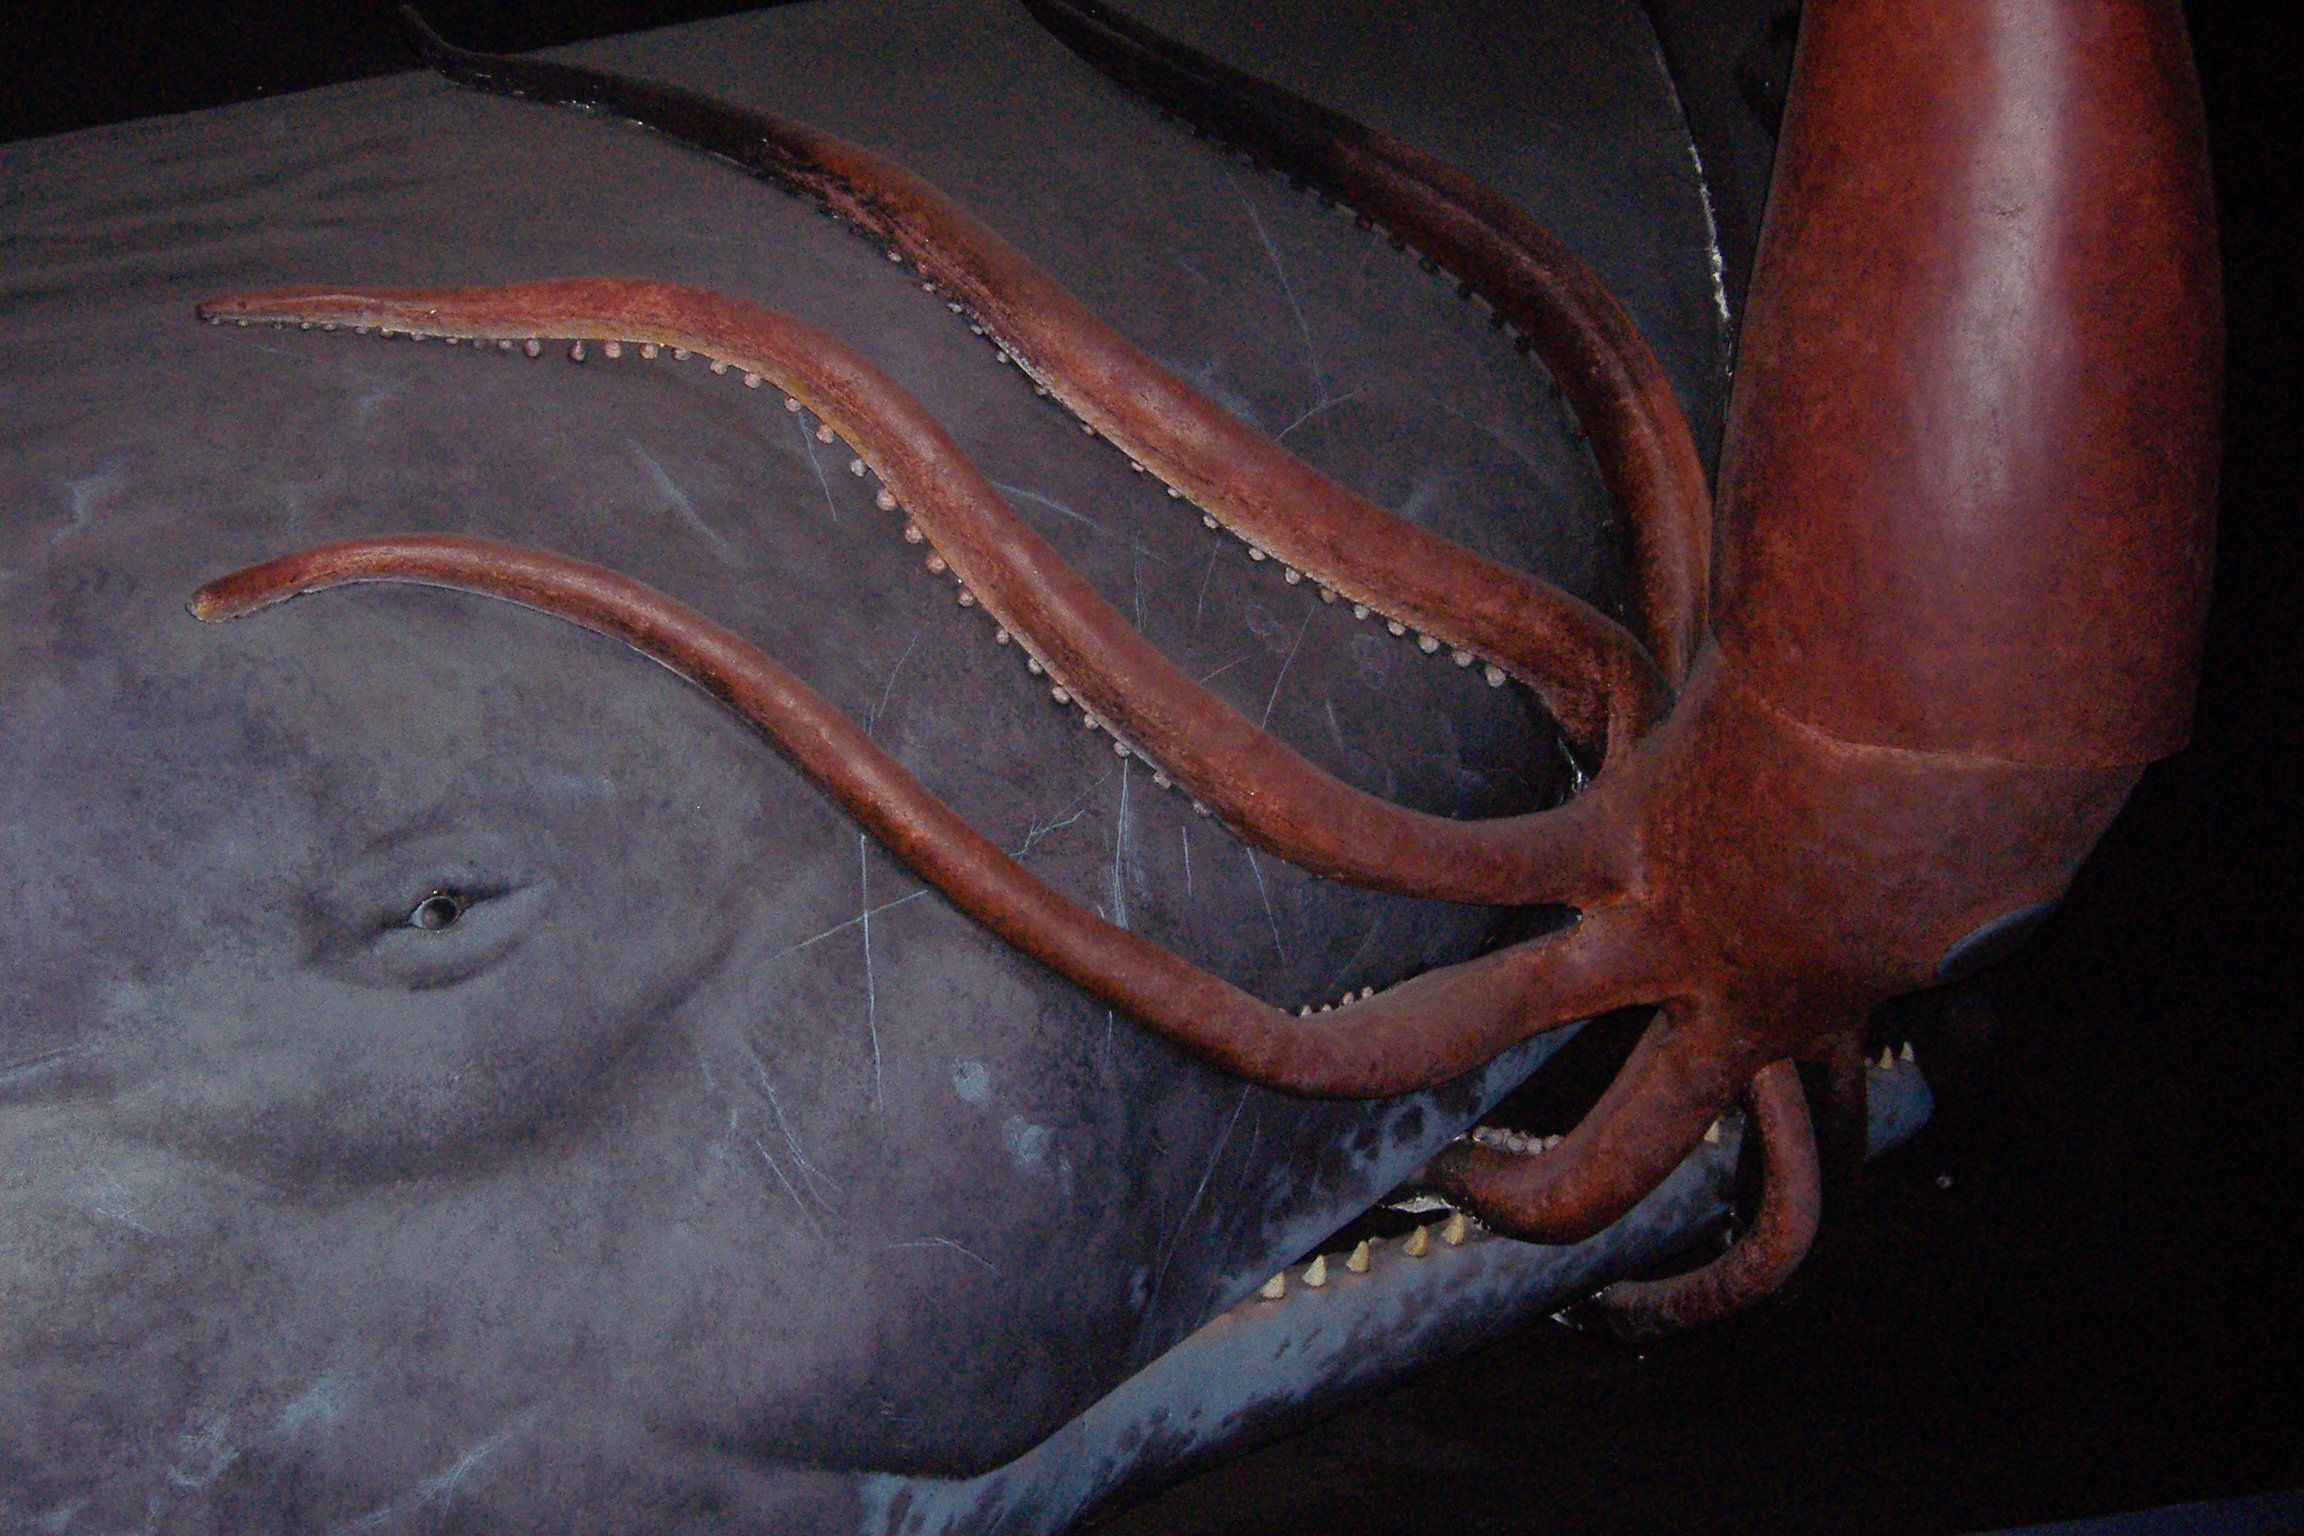 Giant squid attacking whale or whale attacking giant squid ...